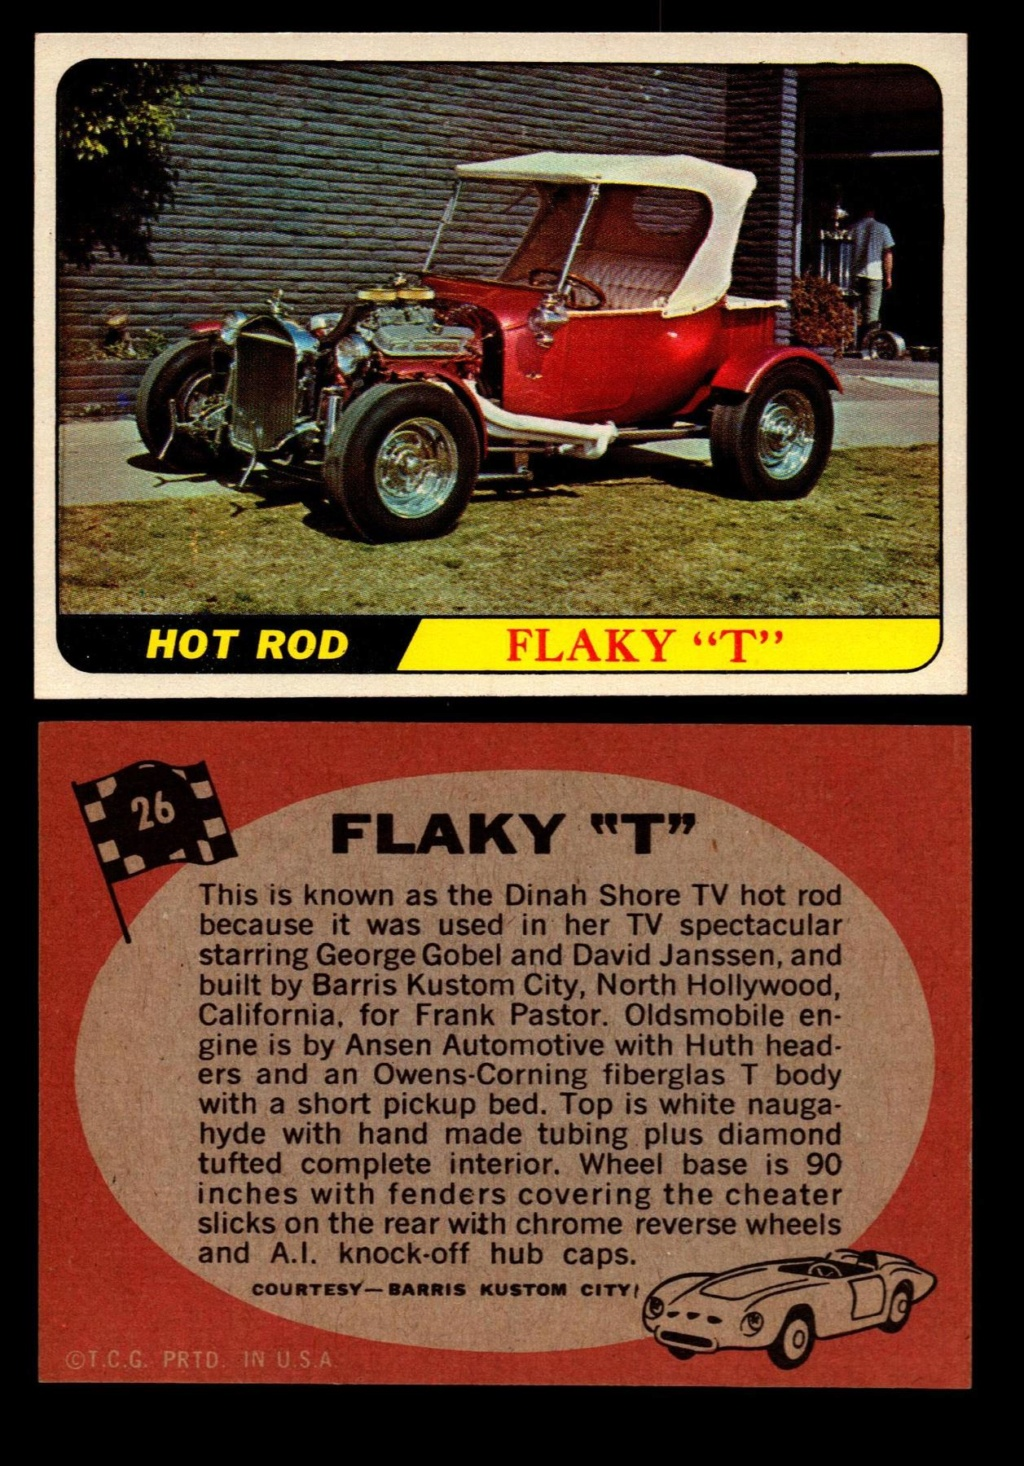 Hot Rods Topps - Vintage Trading Cards 1968 - Custom car - Dragster - Racer - Dream car - Barris Kustom City - Ed Roth Darrill Starbird, Gene Winfield, Bill Cuchenberry - Page 2 26_e2510